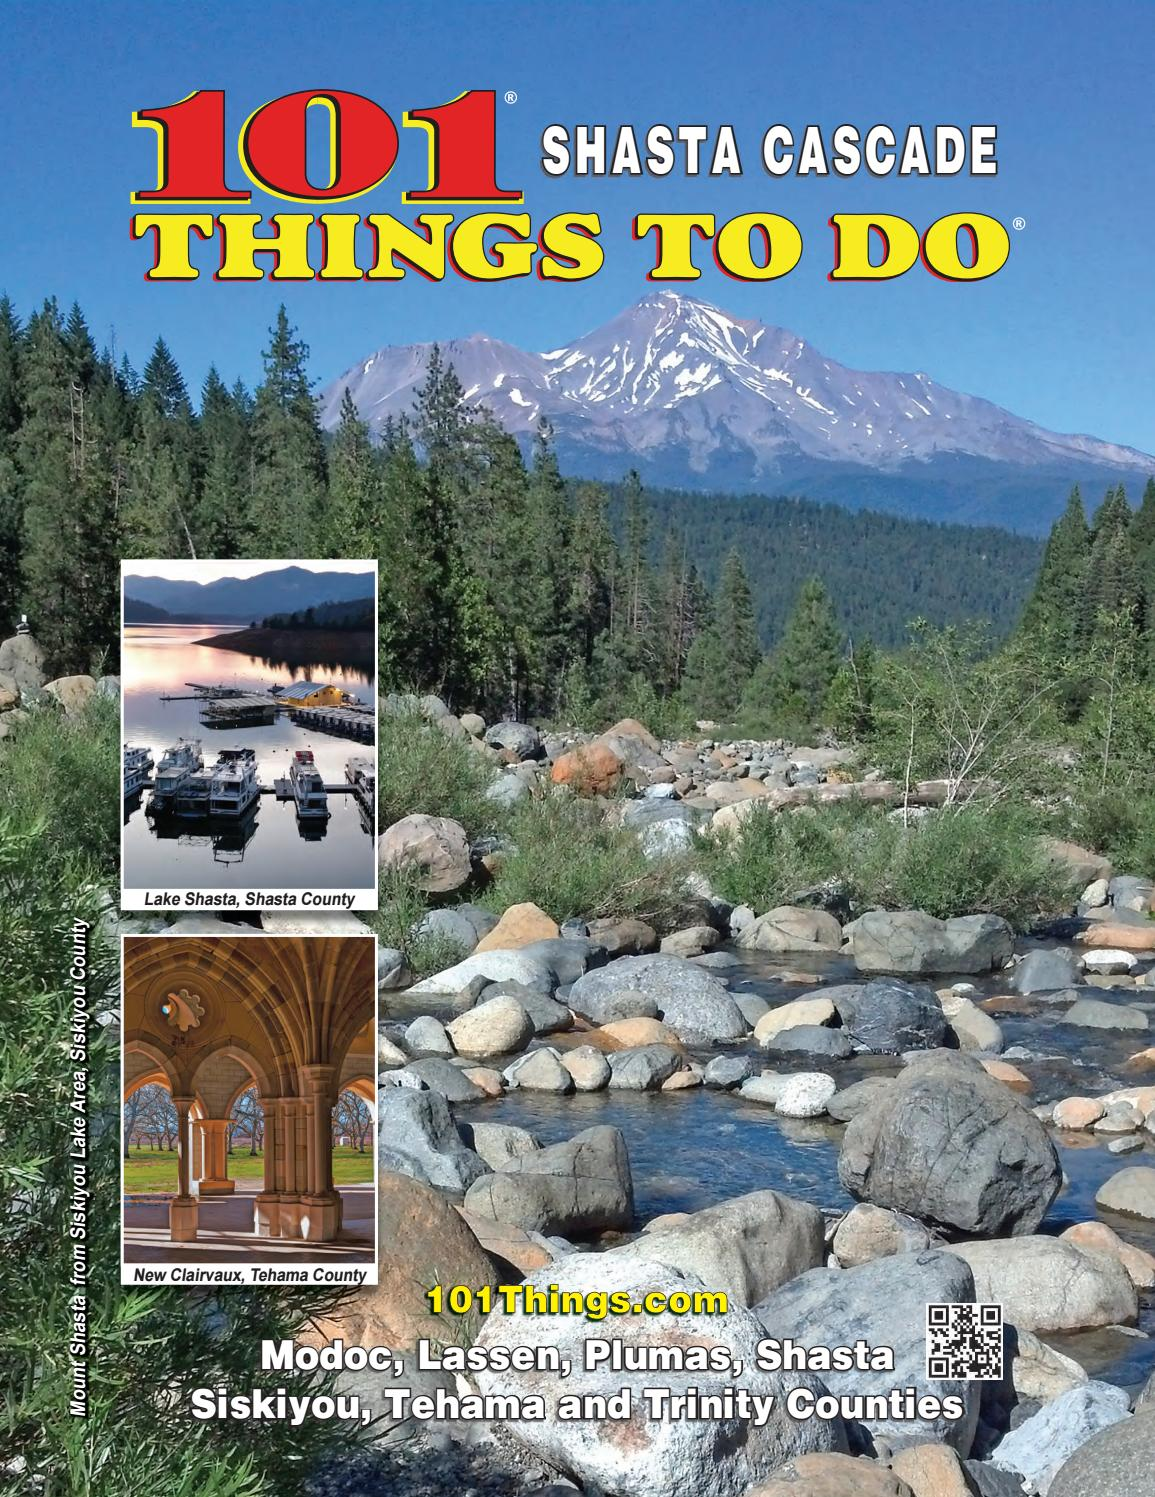 16a95858613 101 Things to Do in Shasta Cascade 2017 by 101 Things To Do ...